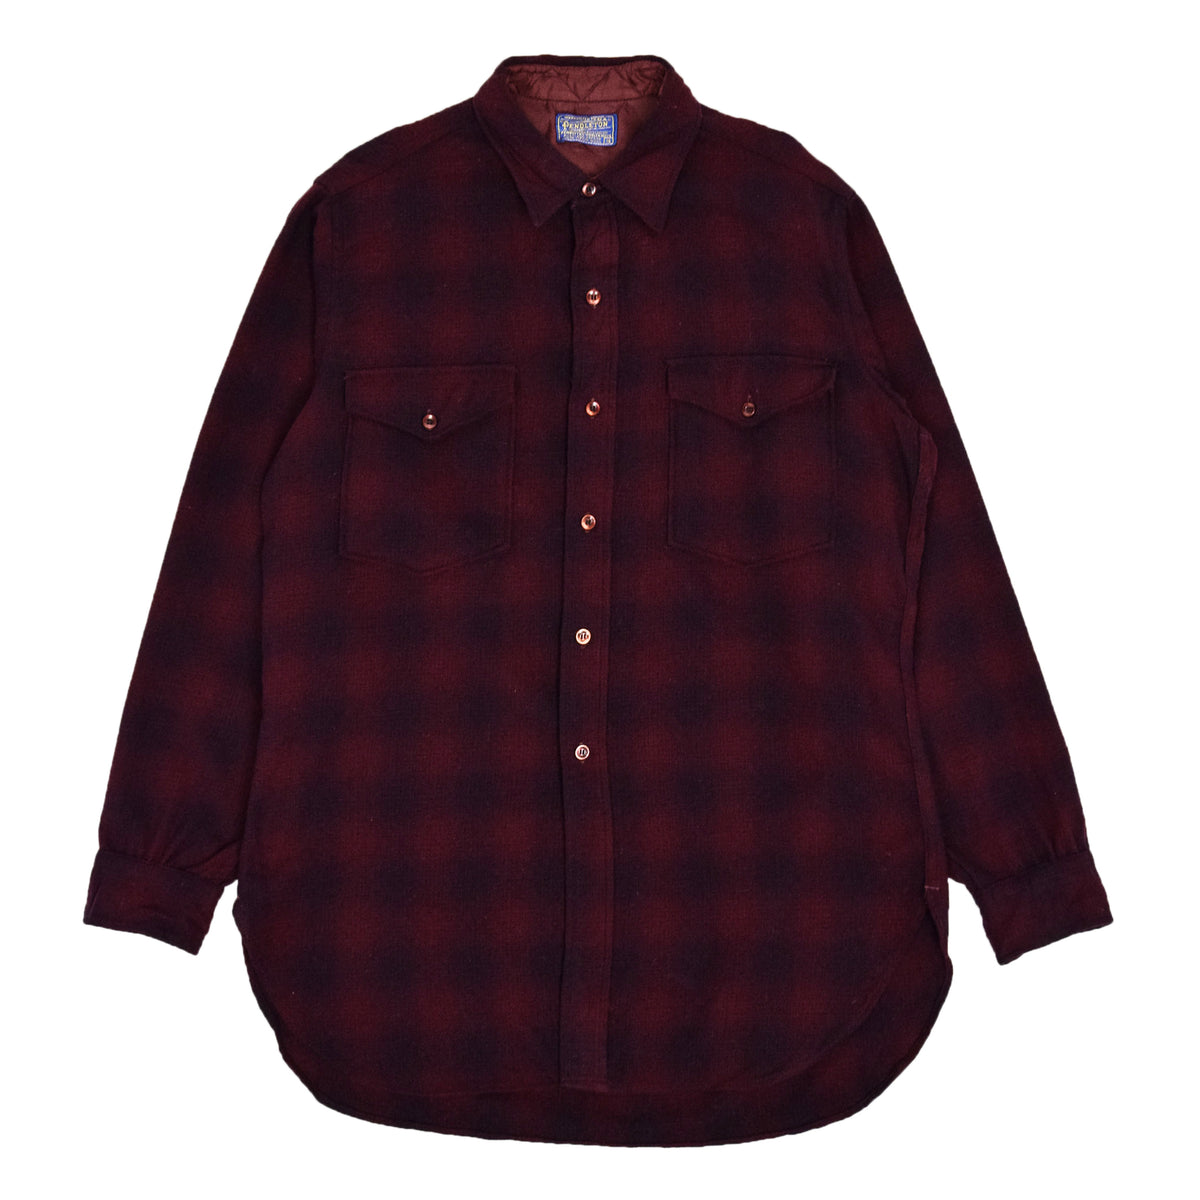 Vintage Pendleton Plaid Long Sleeve Virgin Wool Check Shirt L FRONT